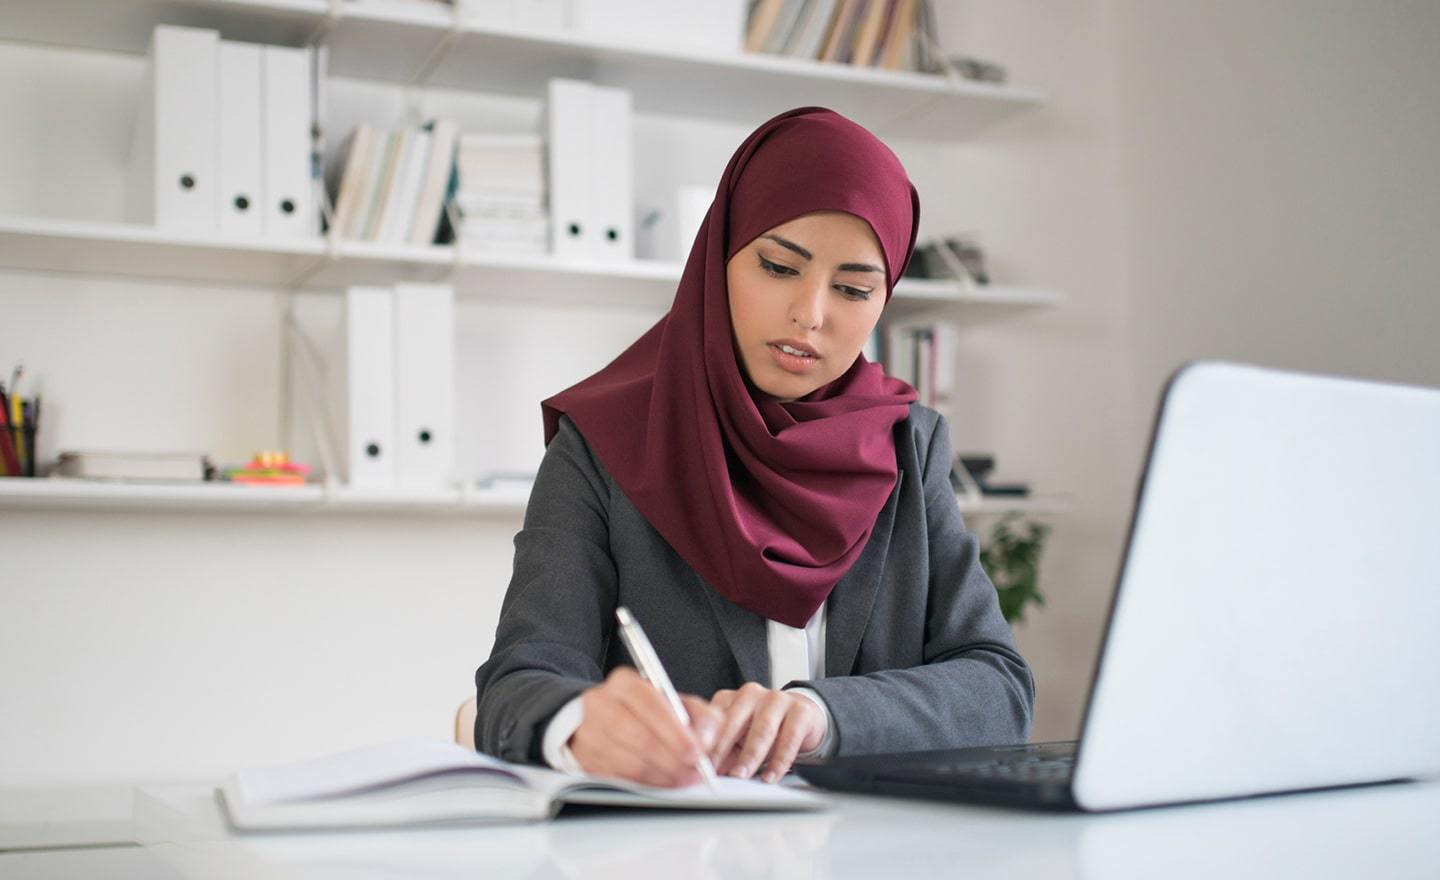 Woman in a hijab at her desk